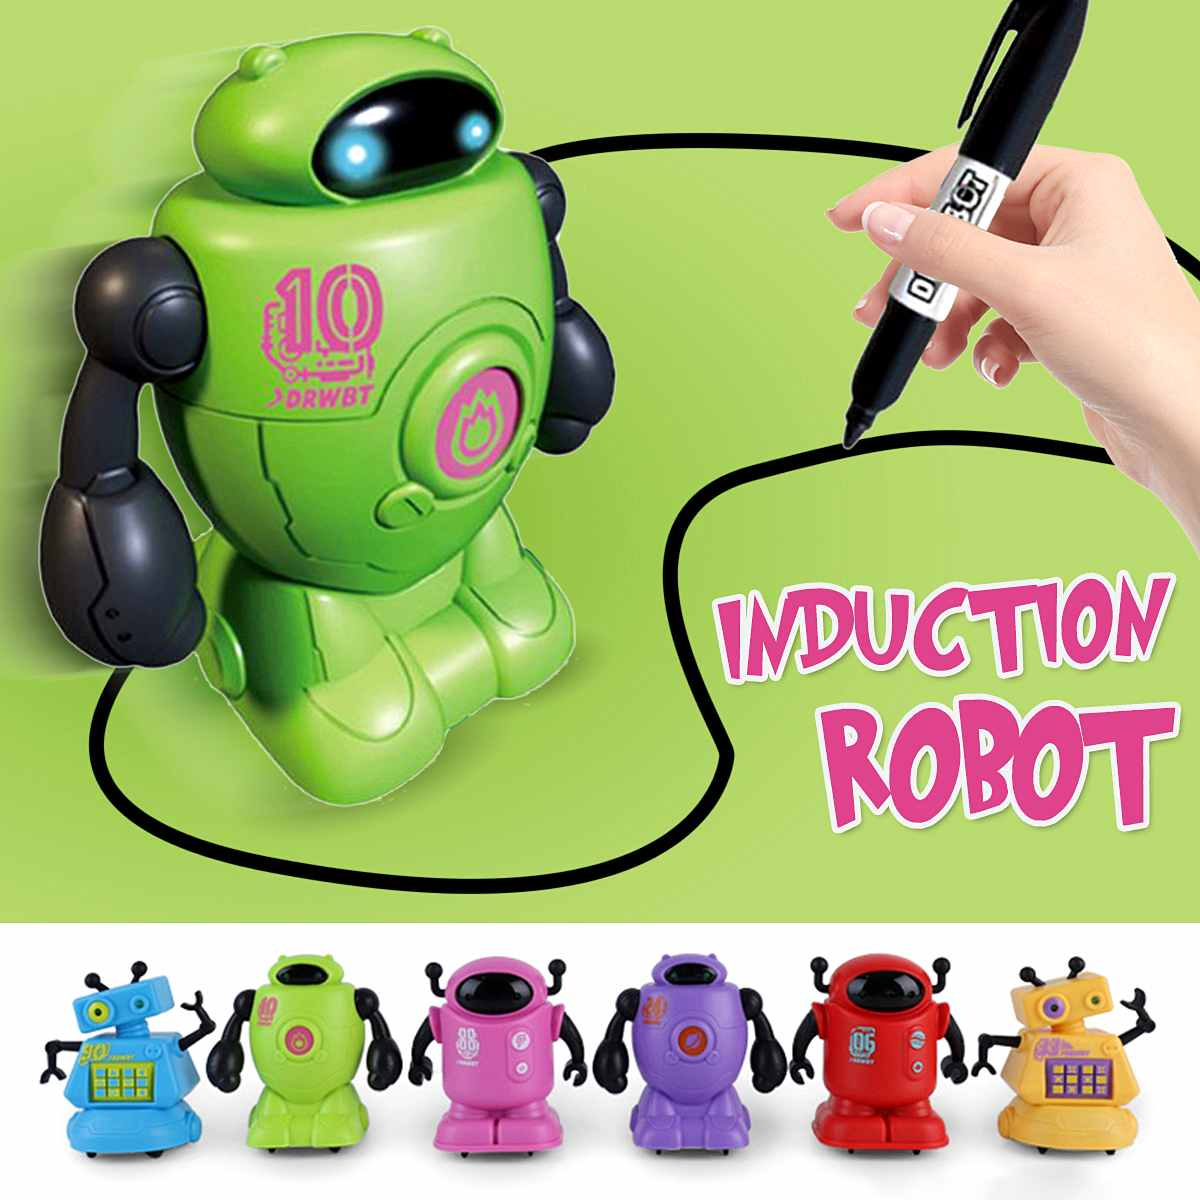 Creativity Original Inductive Electric Robot Car Line Magic Follower Pen Toy Follow Any Line You Draw Gifts Kids Educational Toy